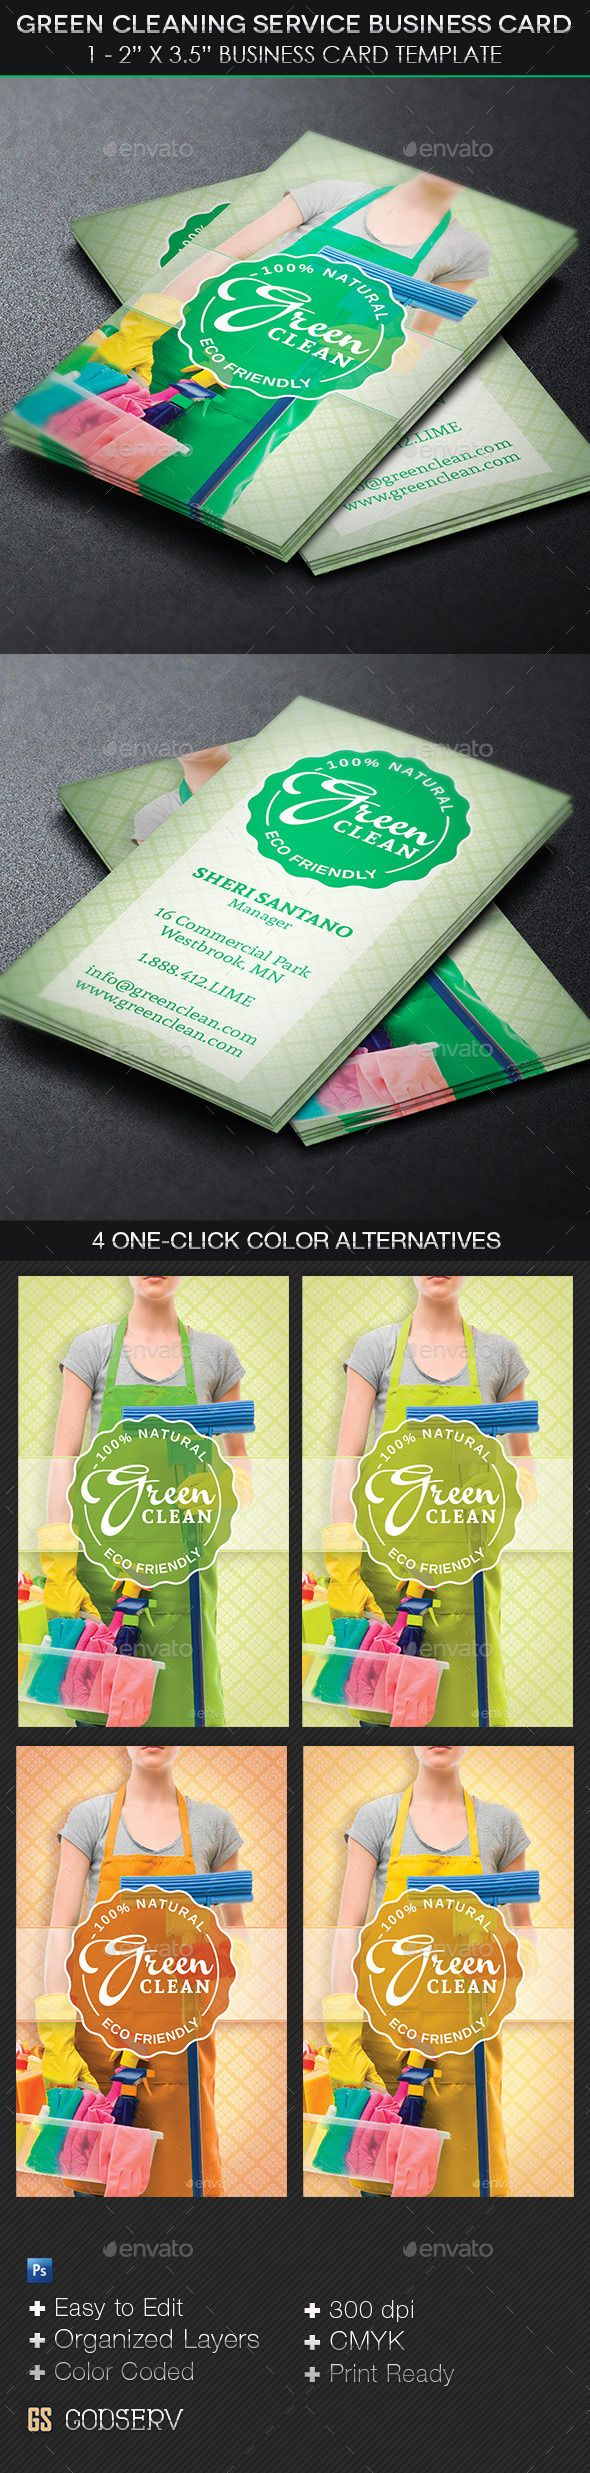 Green Cleaning Service Business Card Template | Green cleaning ...